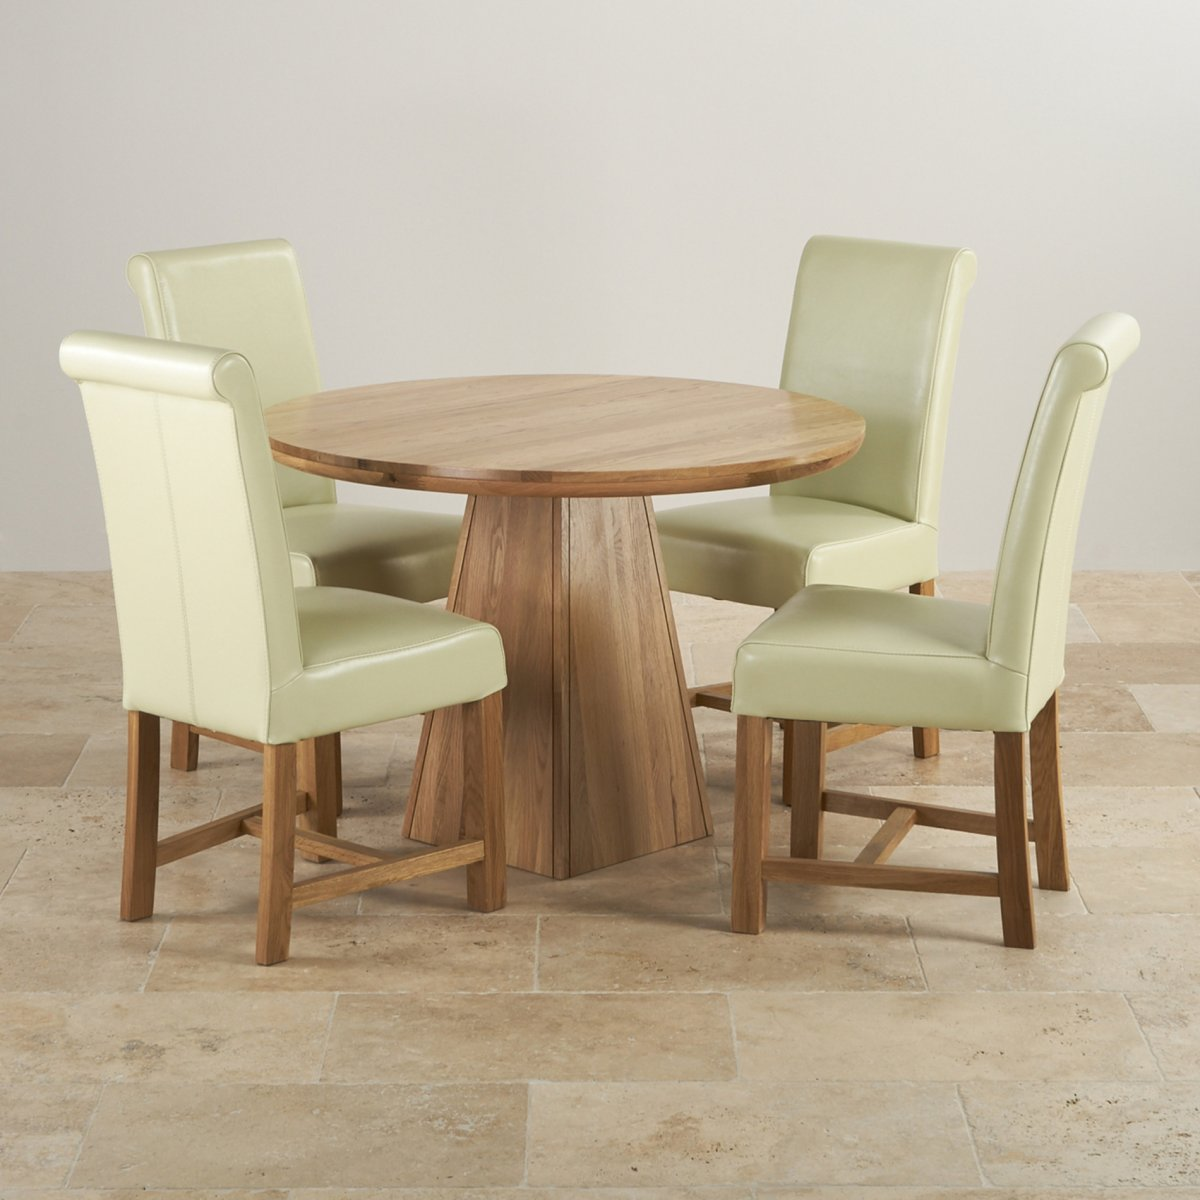 Provence Dining Set In Real Oak: Table + 4 Leather Cream